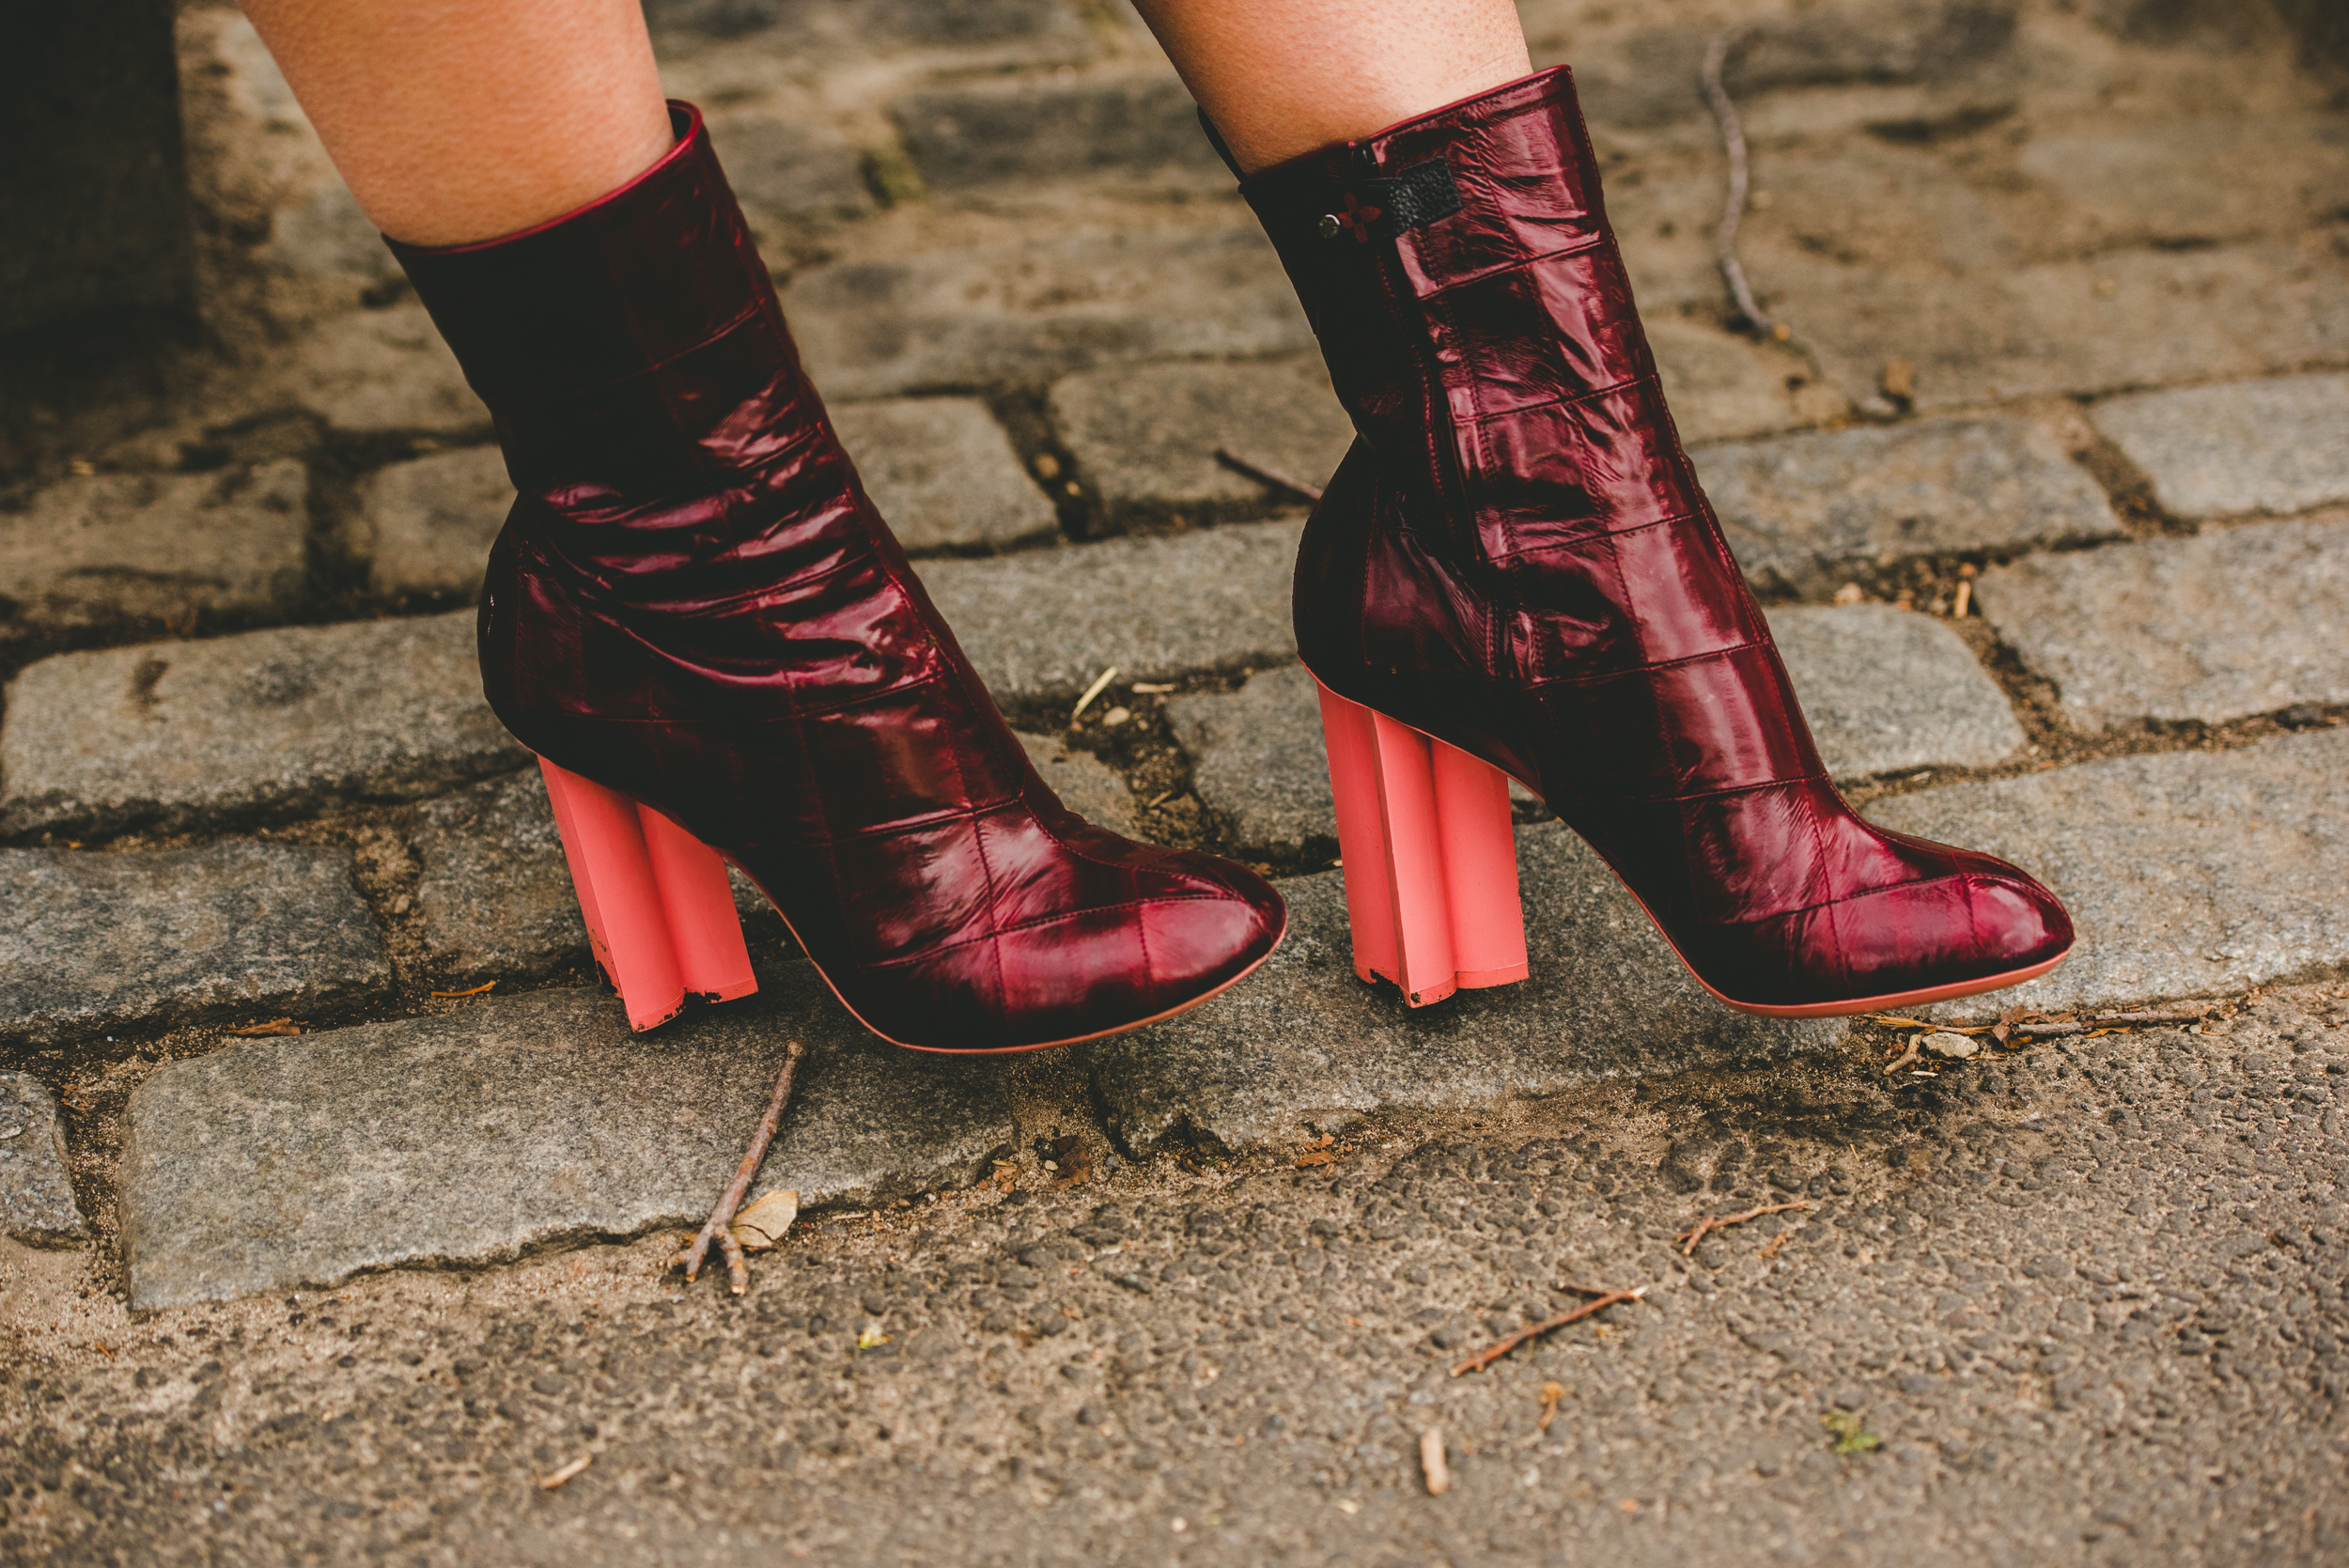 Louis Vuitton Red and Pink Boots